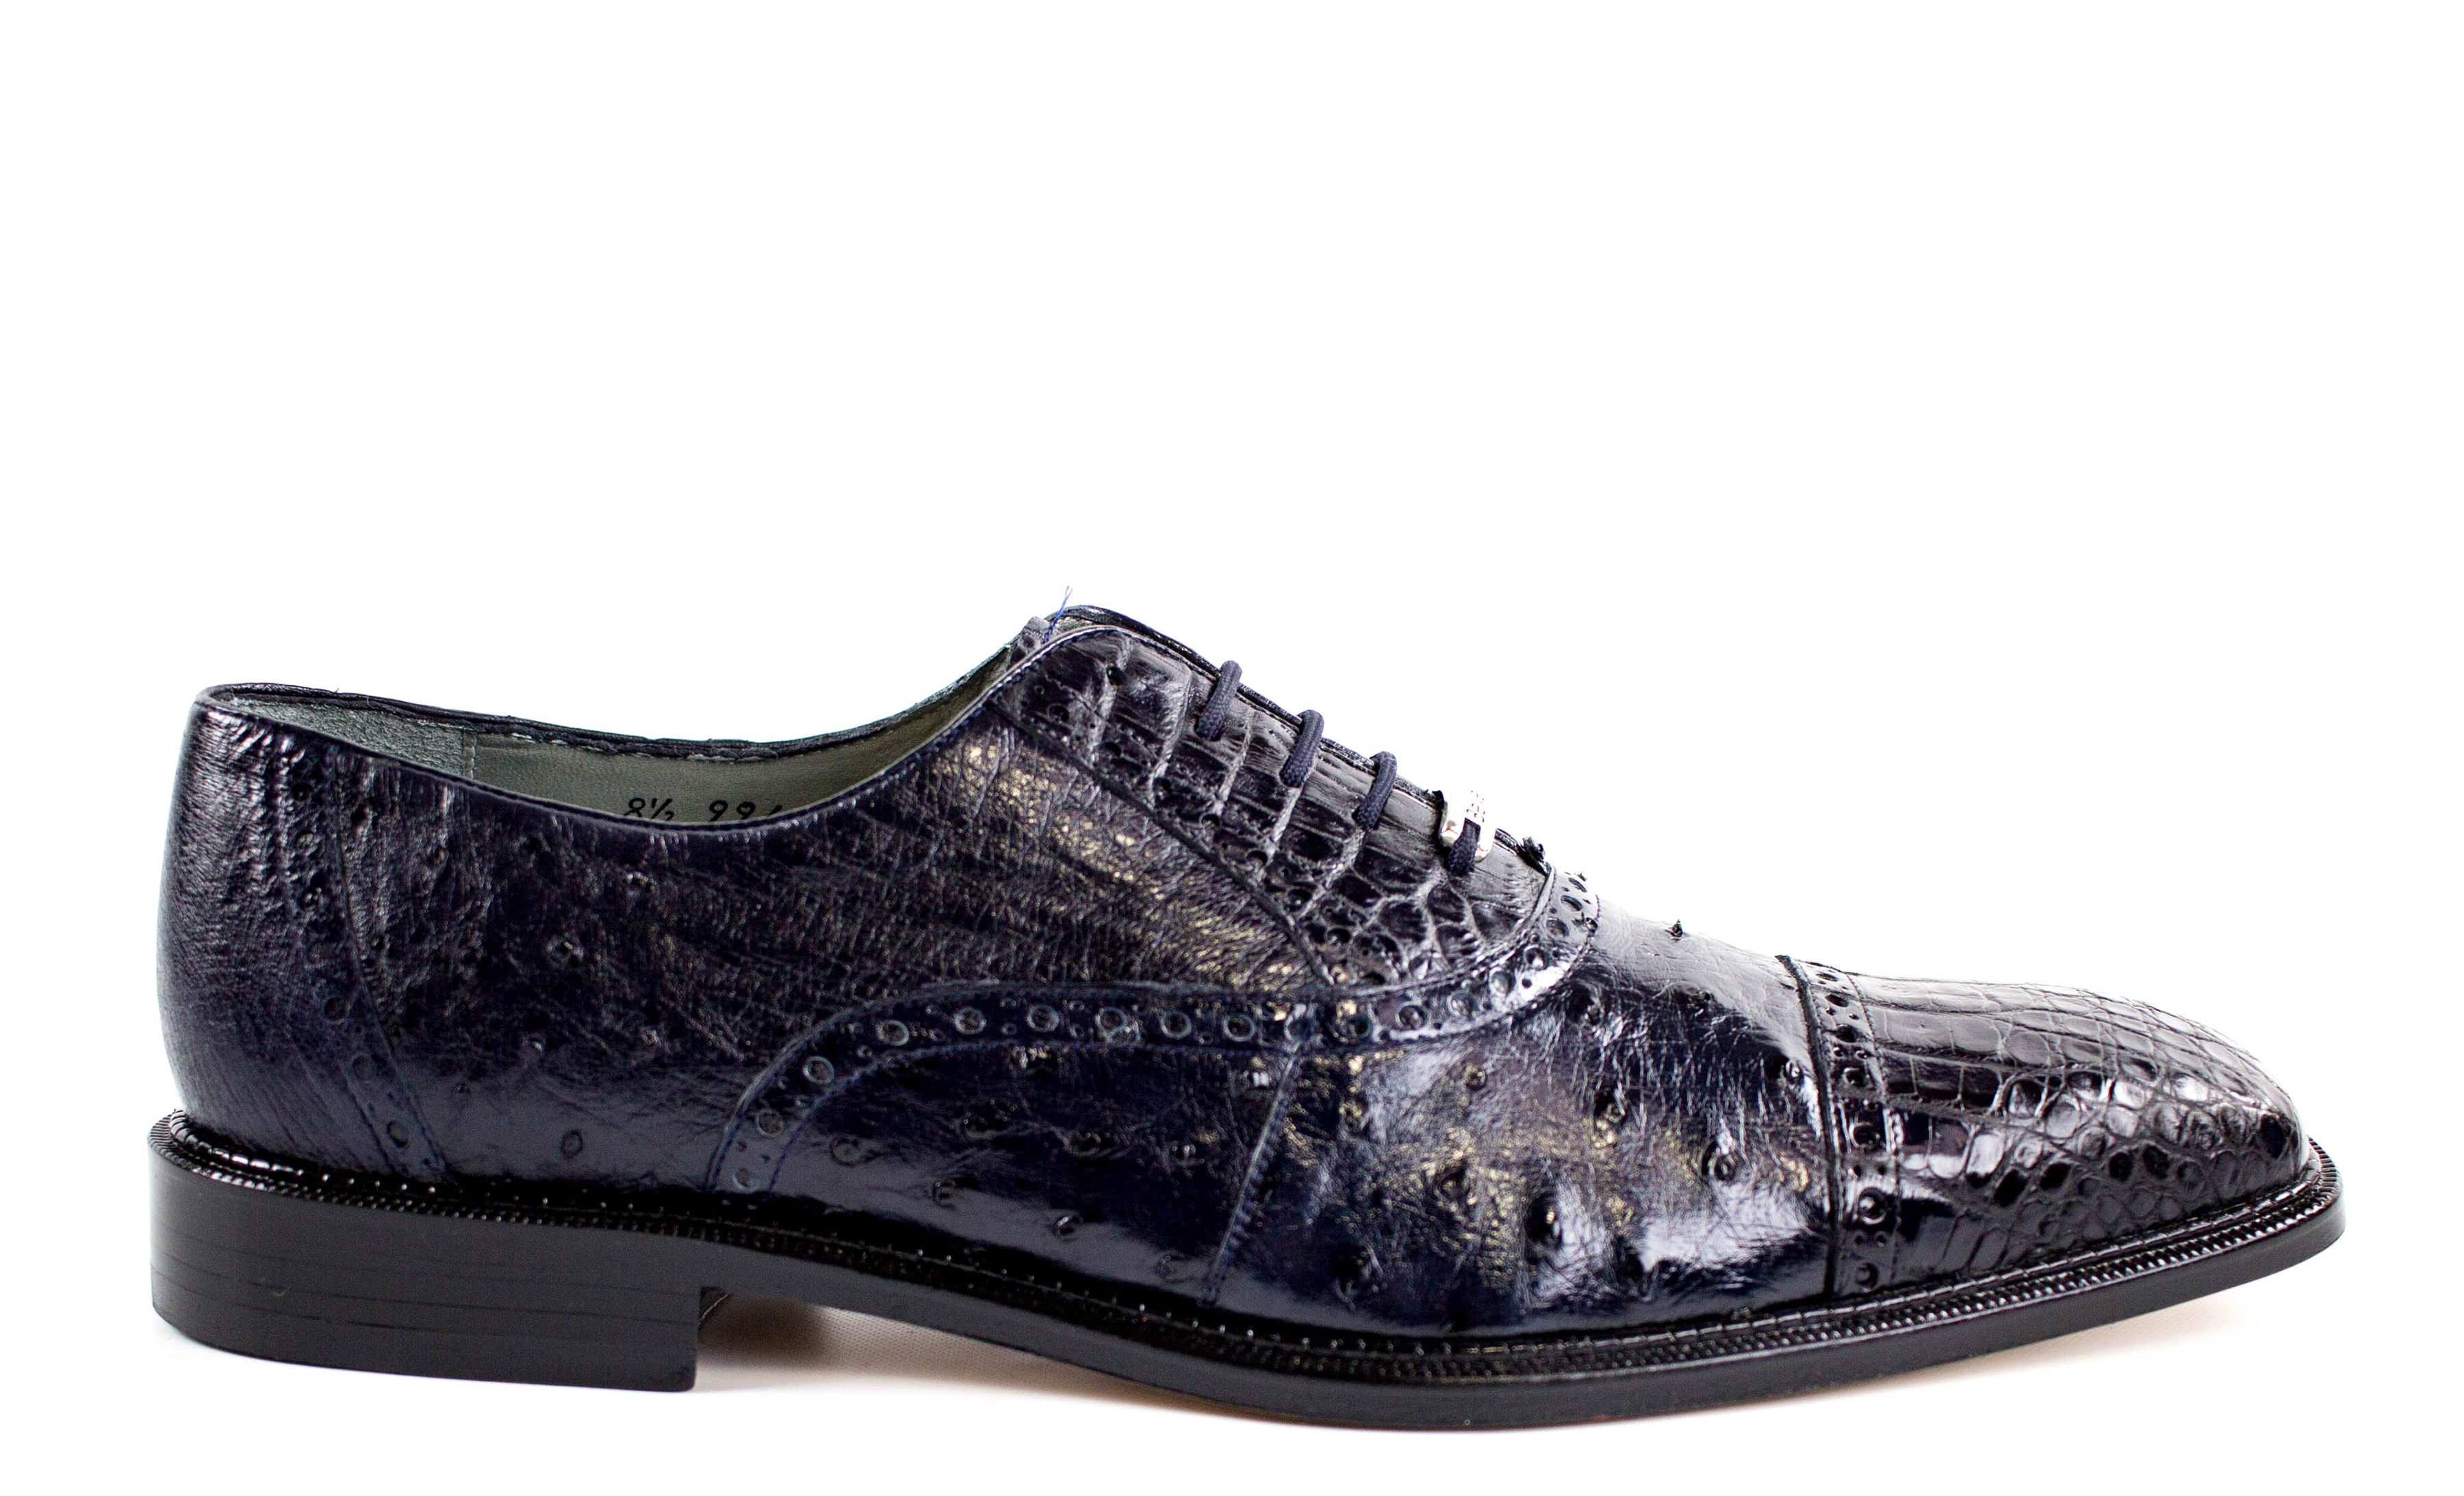 Onesto II, Ostrich and Crocodile, Men's Brogued Oxford, Style: 1419